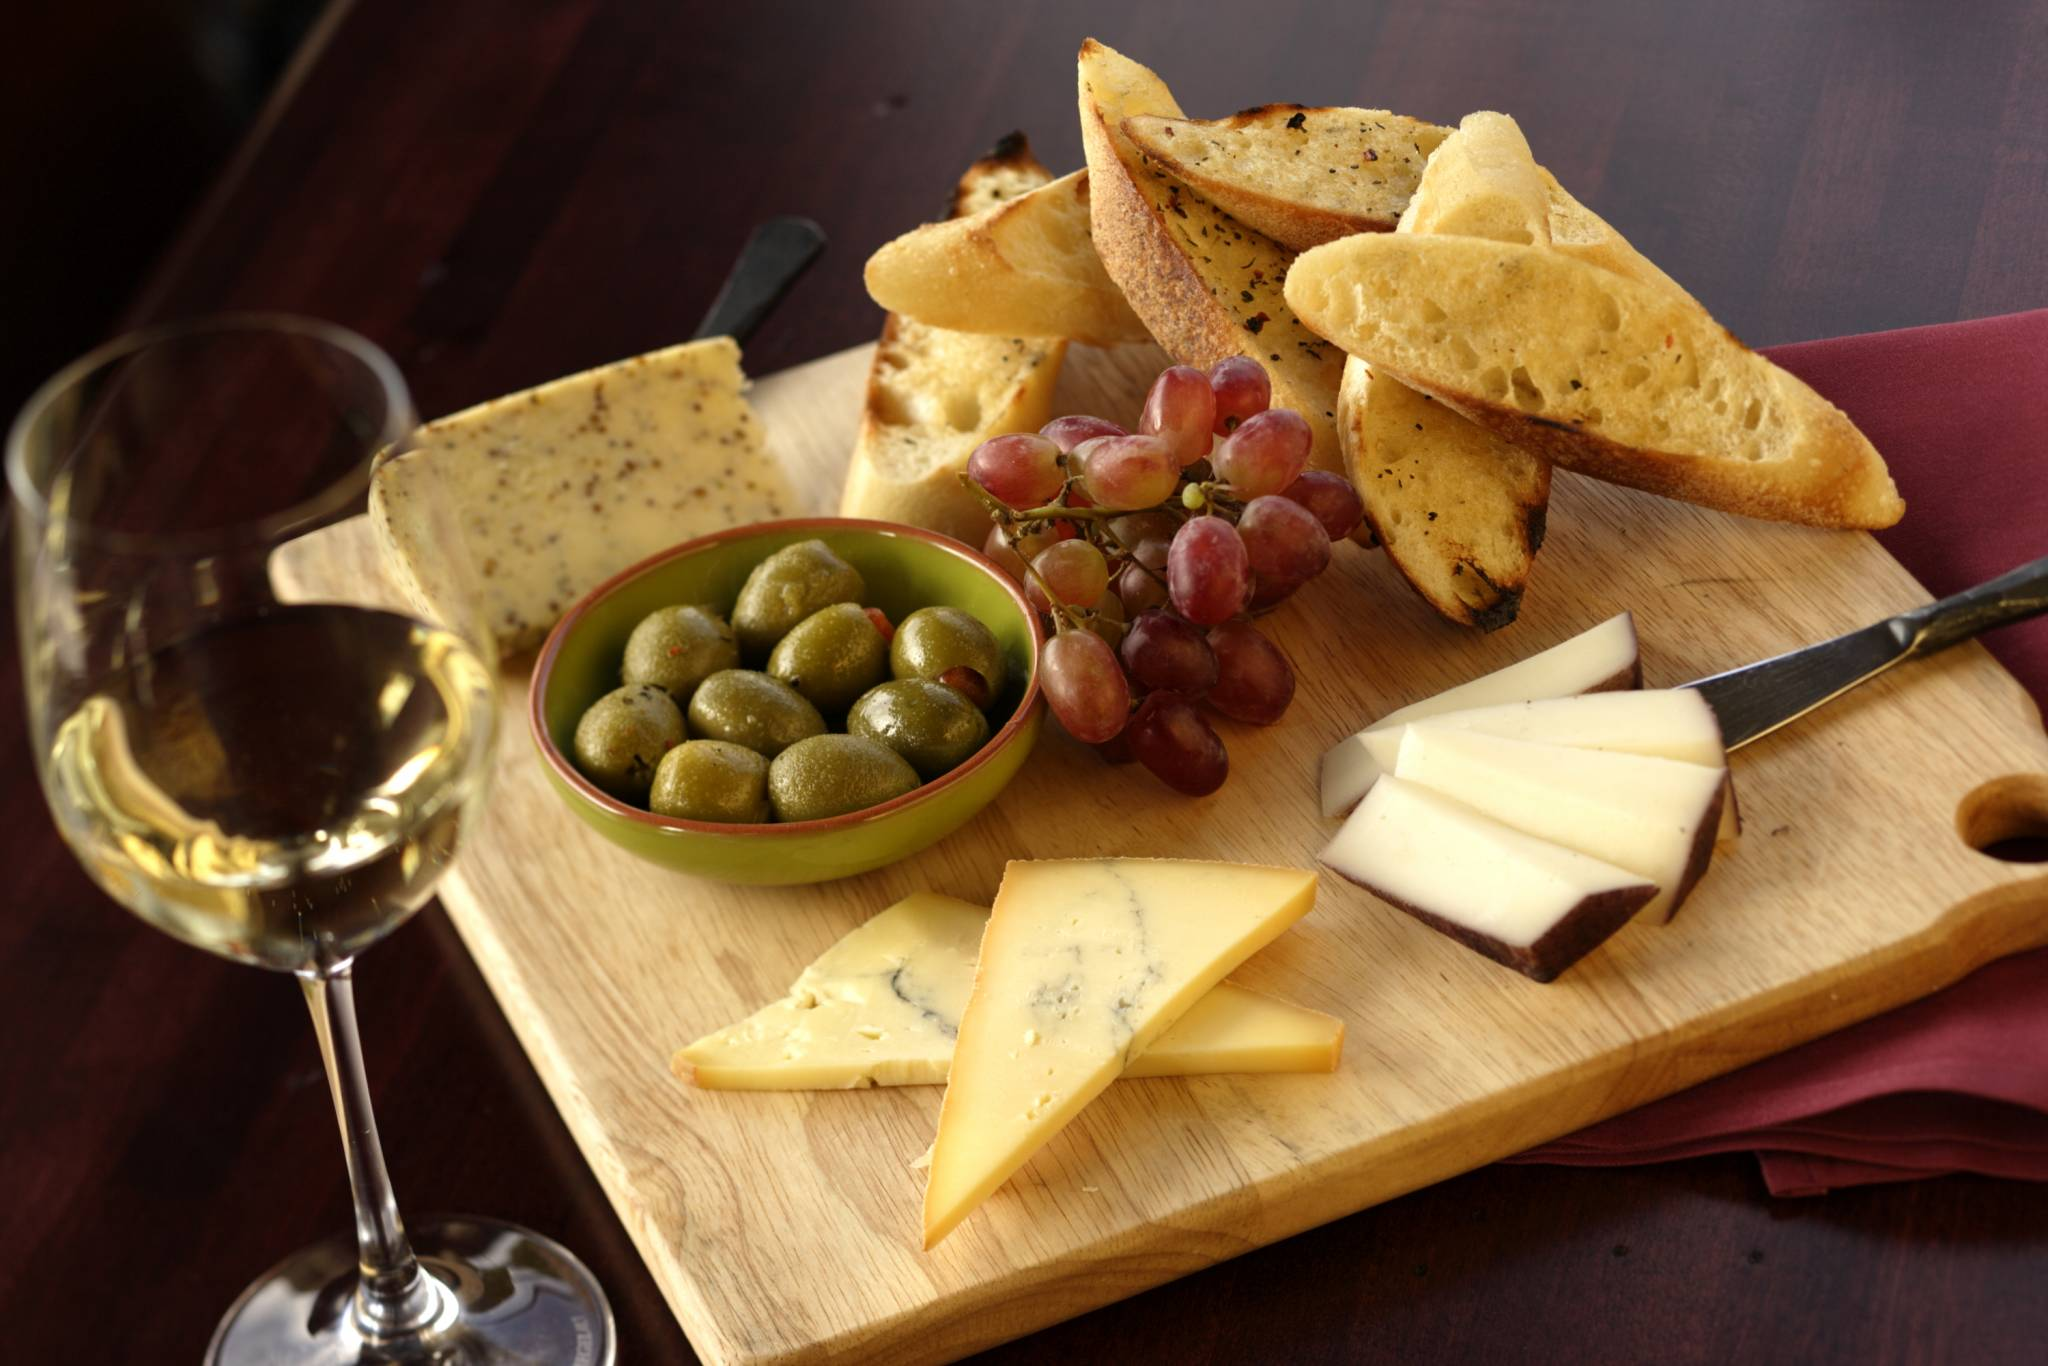 food photo artisan cheese plate & food photo artisan cheese plate \u003e restaurant plates \u003e portfolio ...